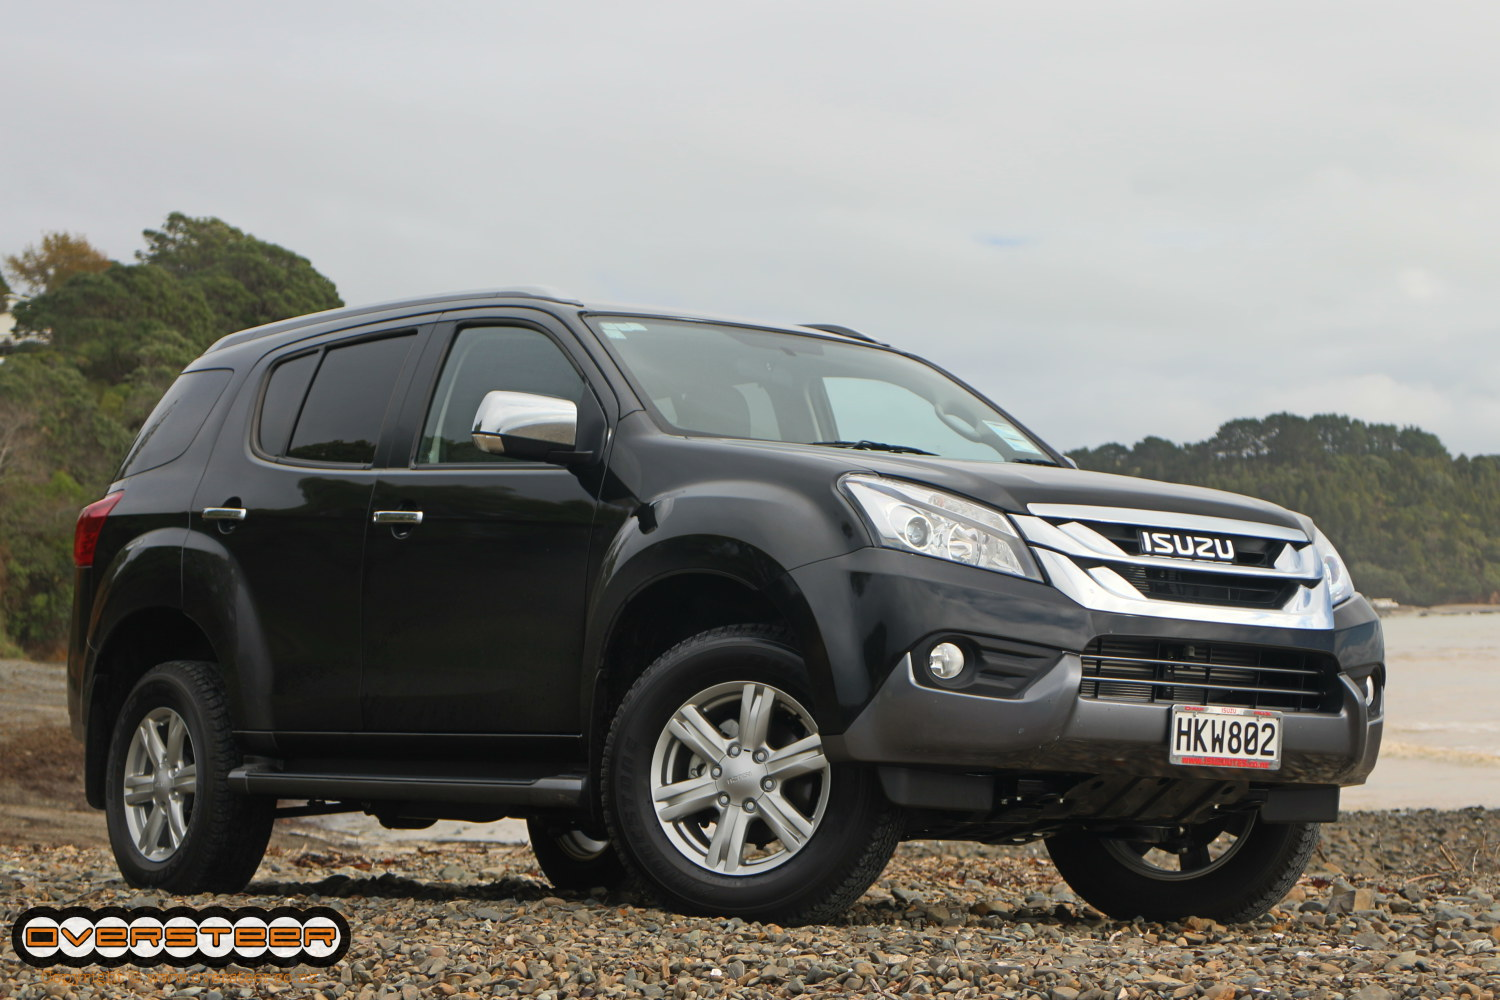 New Isuzu Philippines Mu X 2014 Release, Reviews and Models on